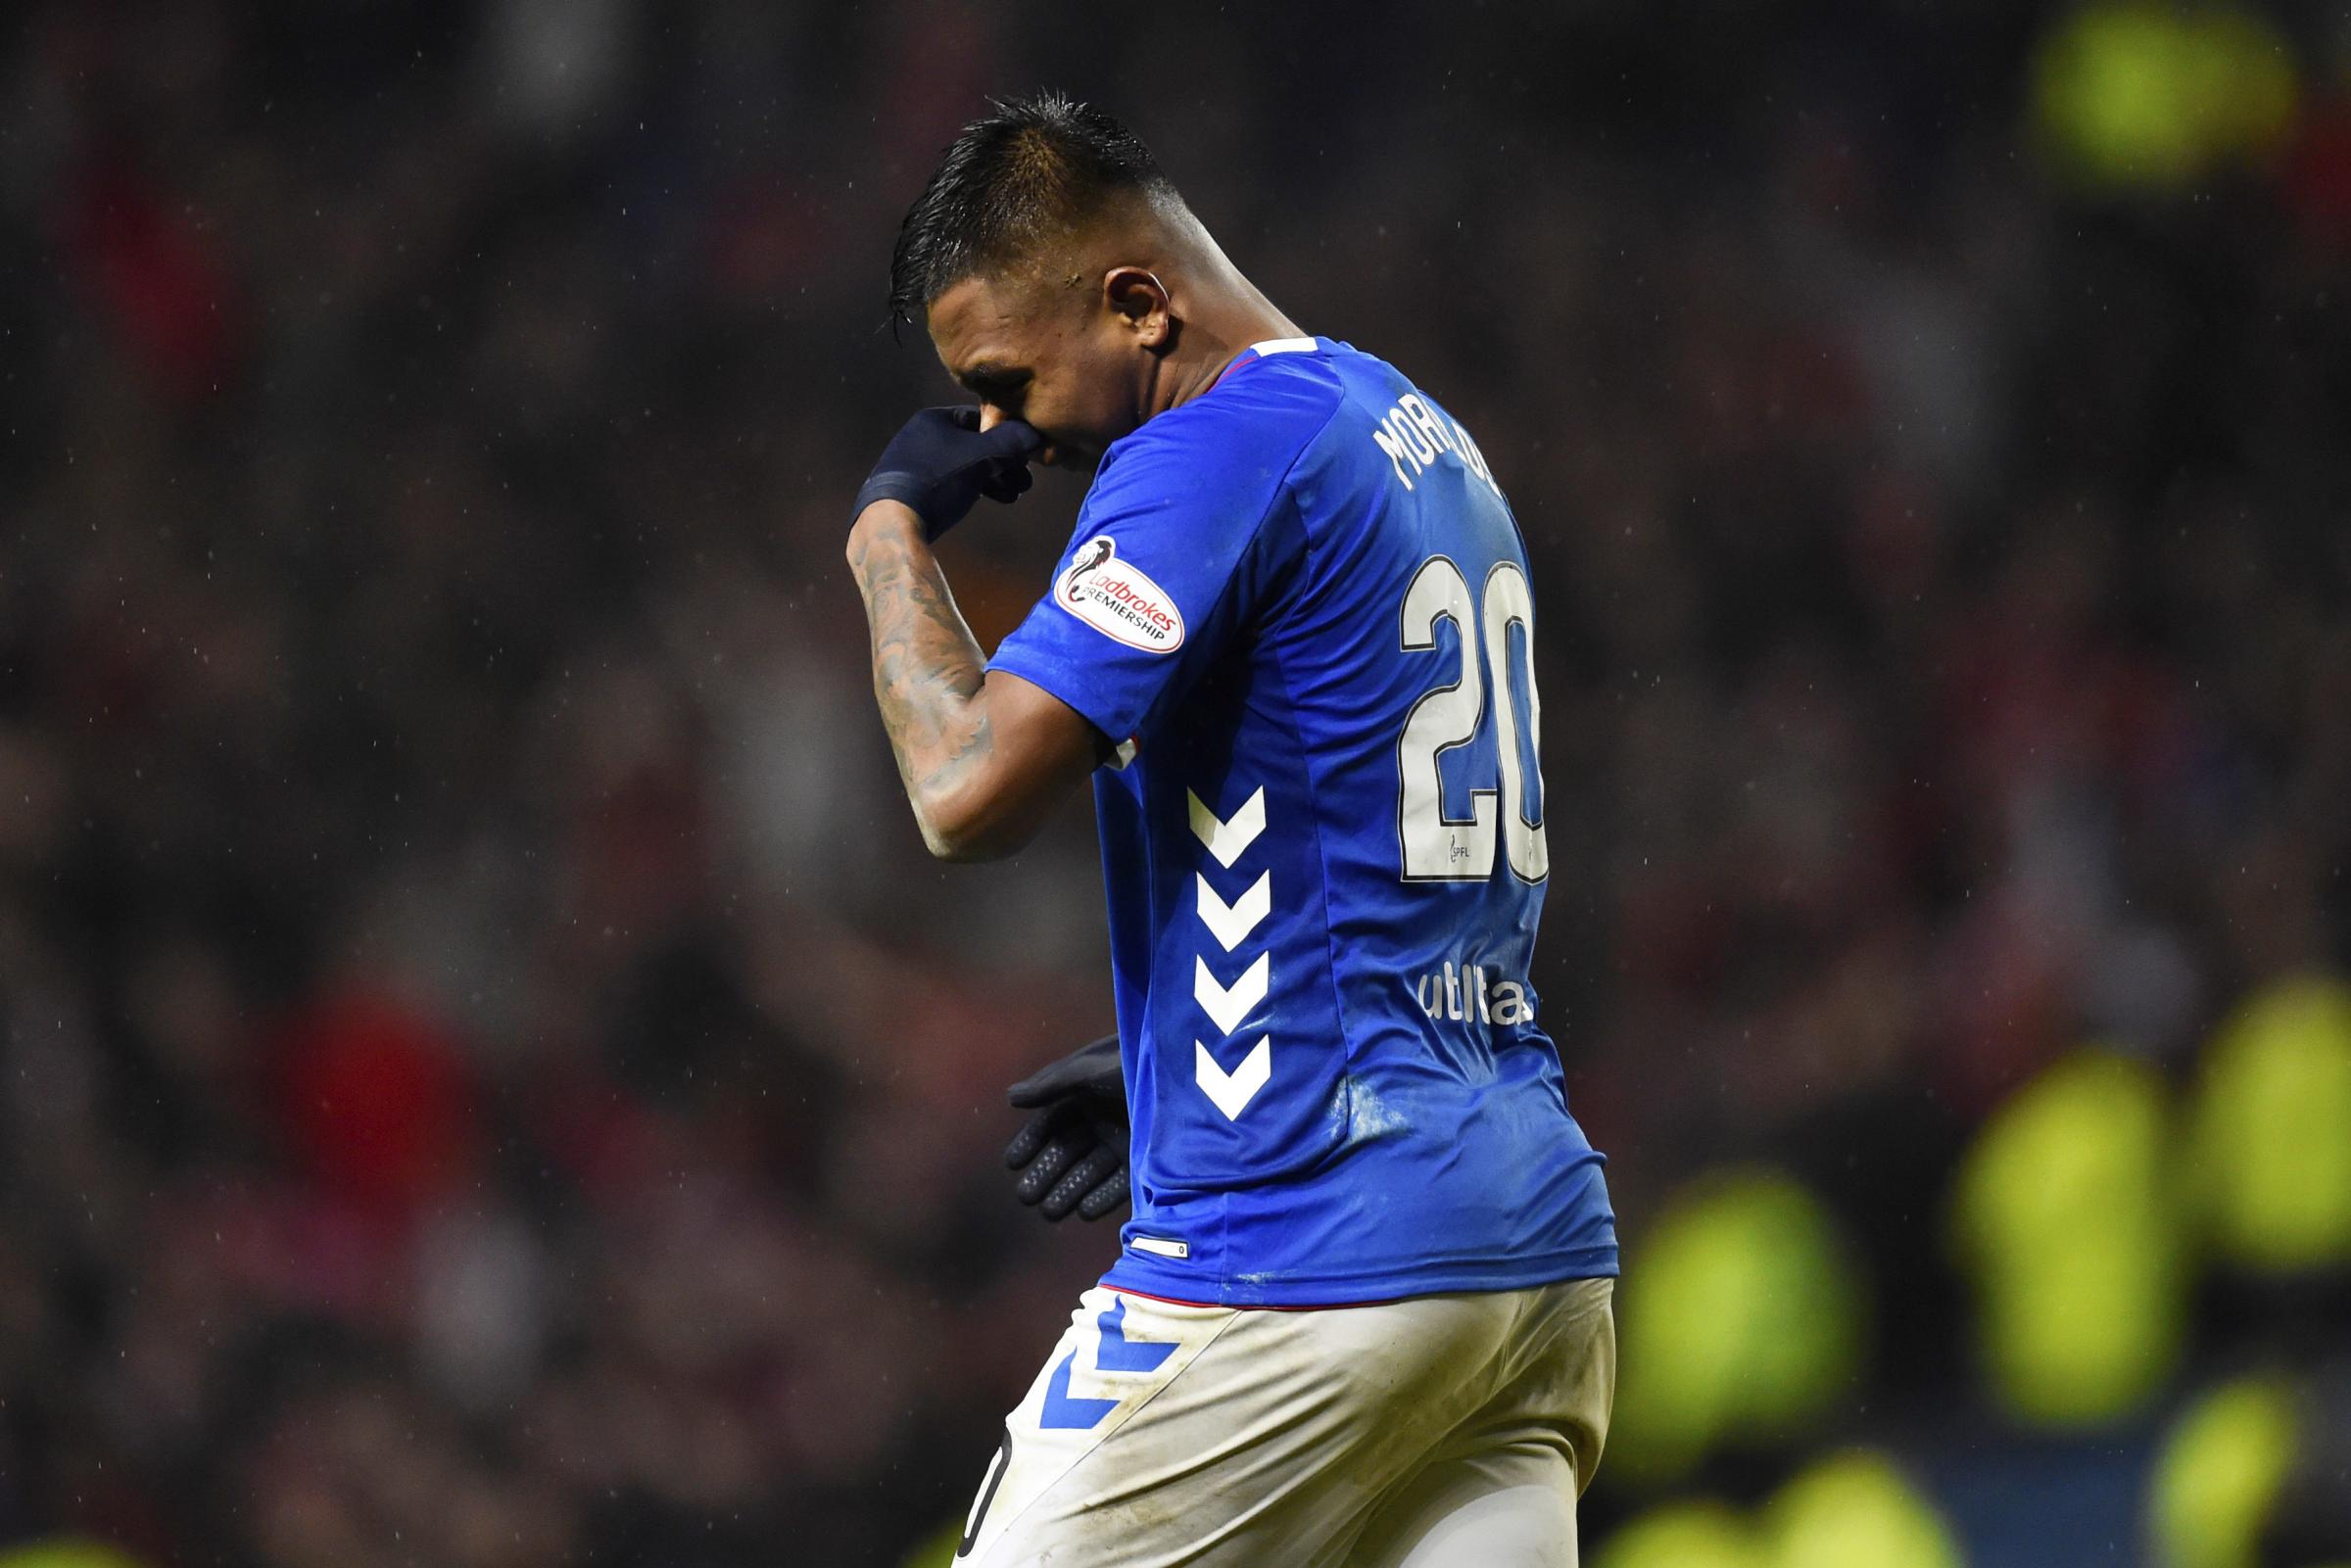 Rangers lose their appeal against Alfredo Morelos yellow card